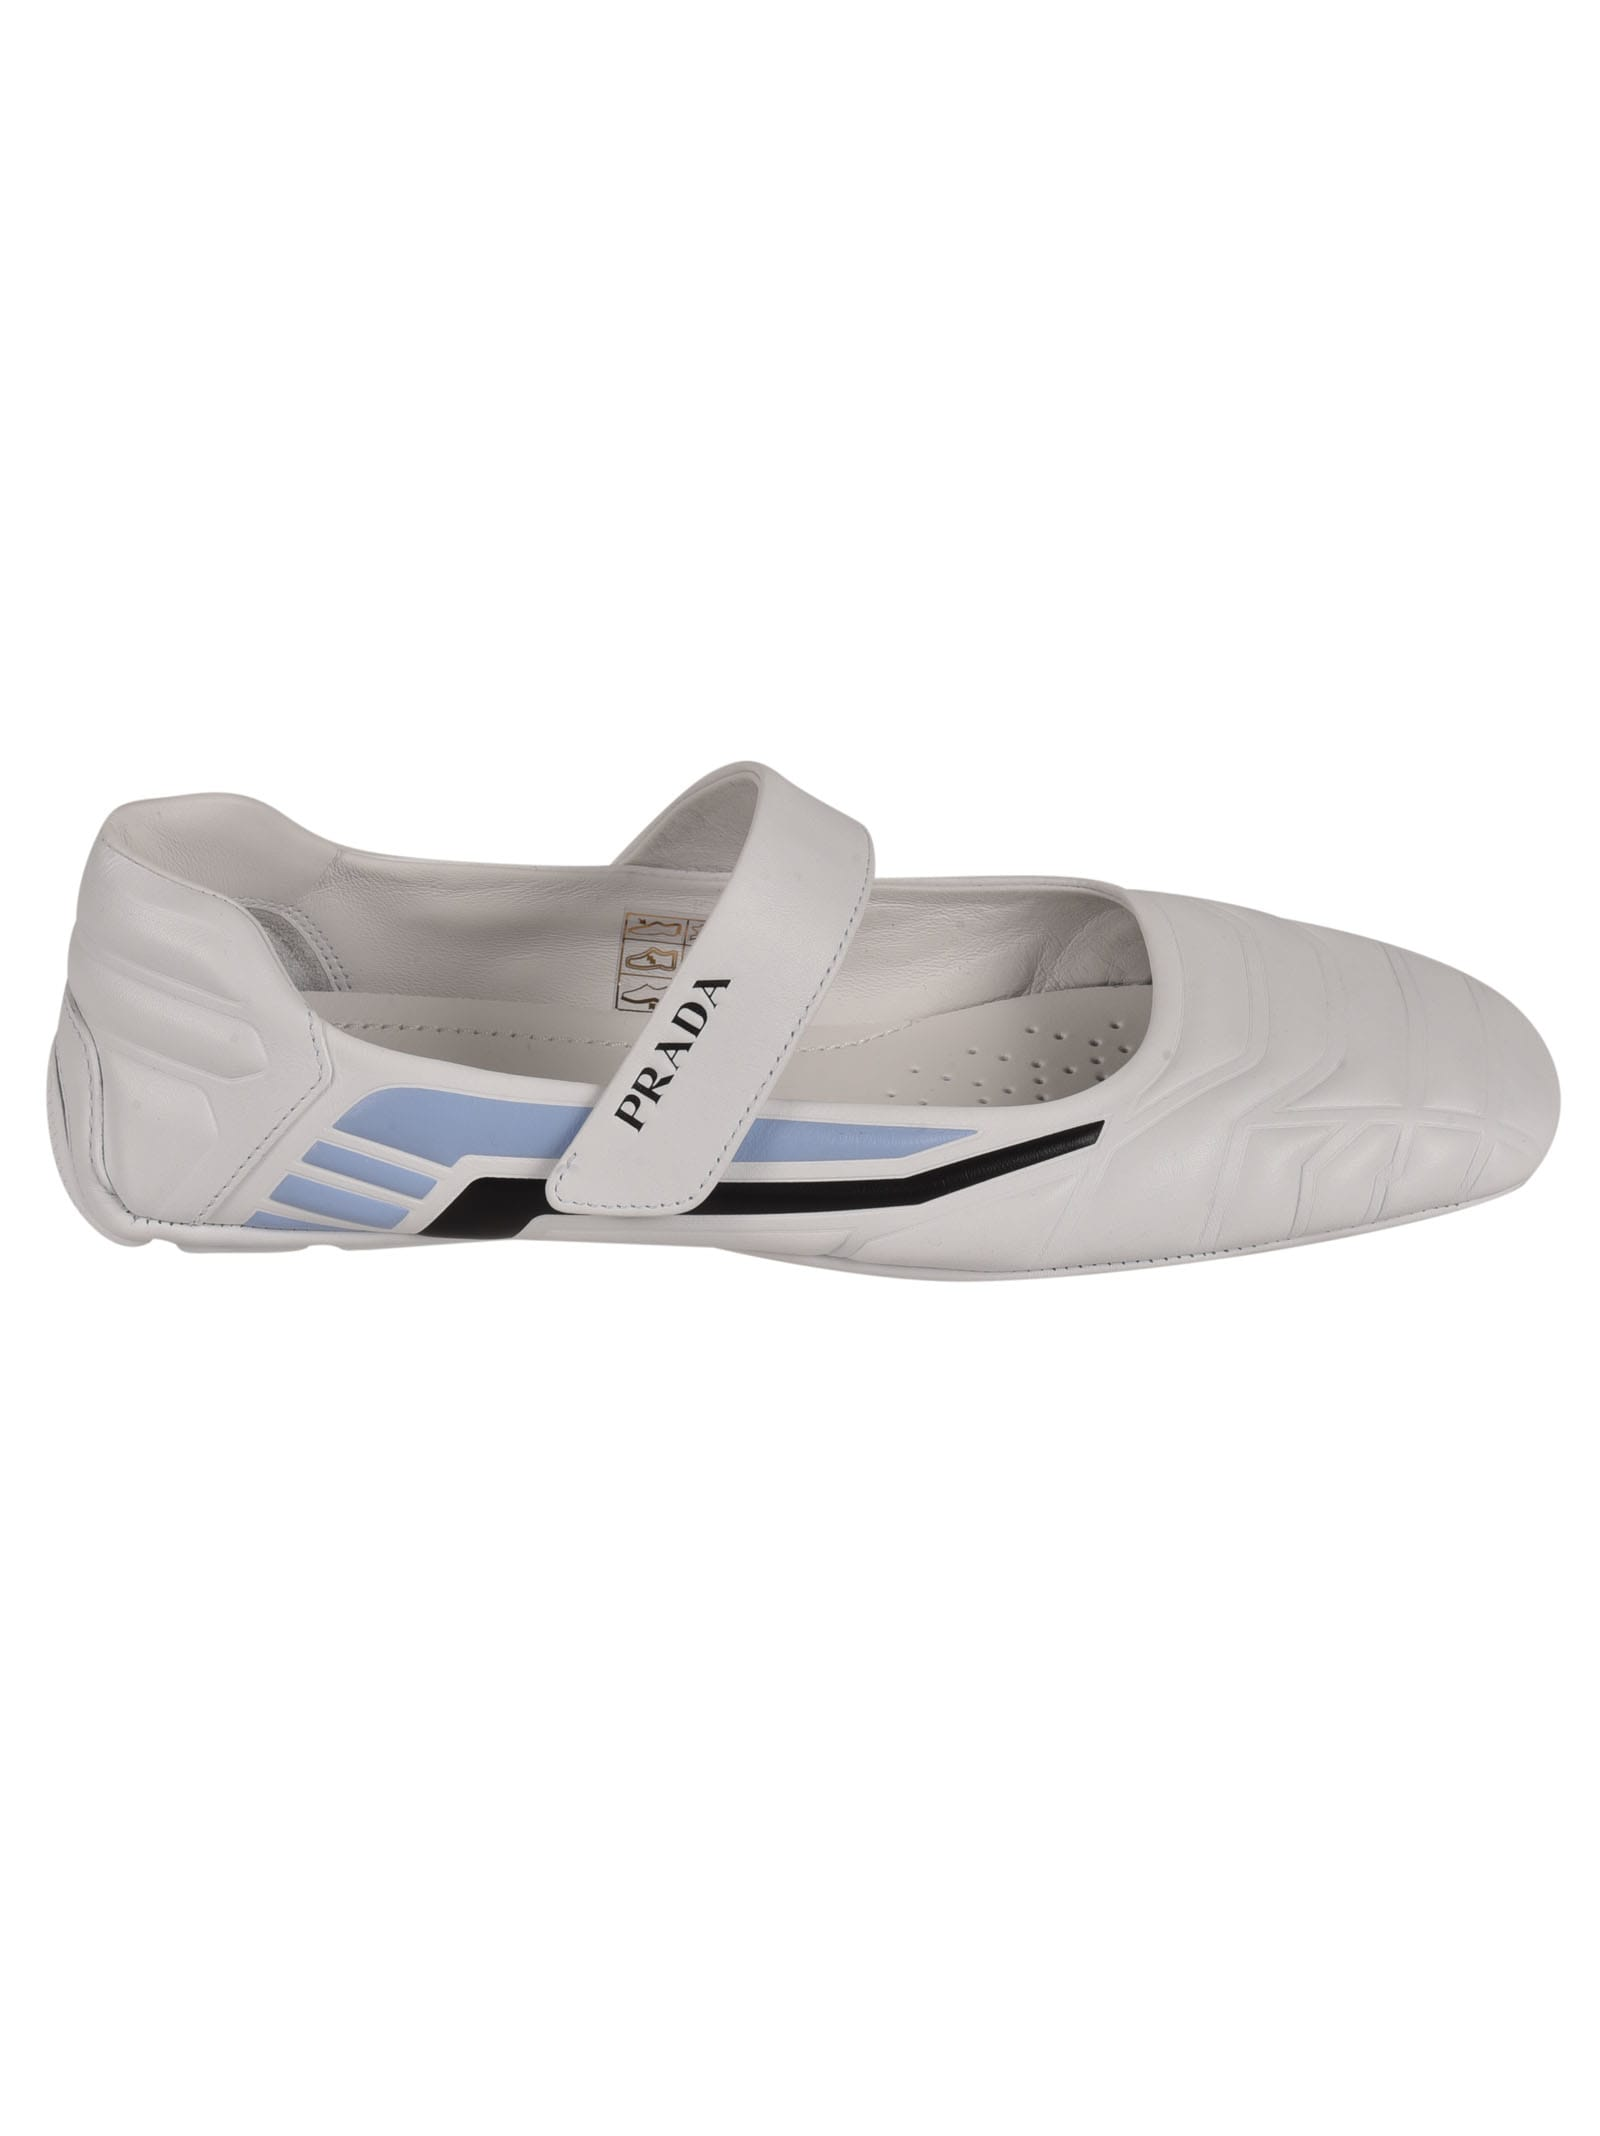 Buy Prada Logo Strap Quilted Slippers online, shop Prada shoes with free shipping